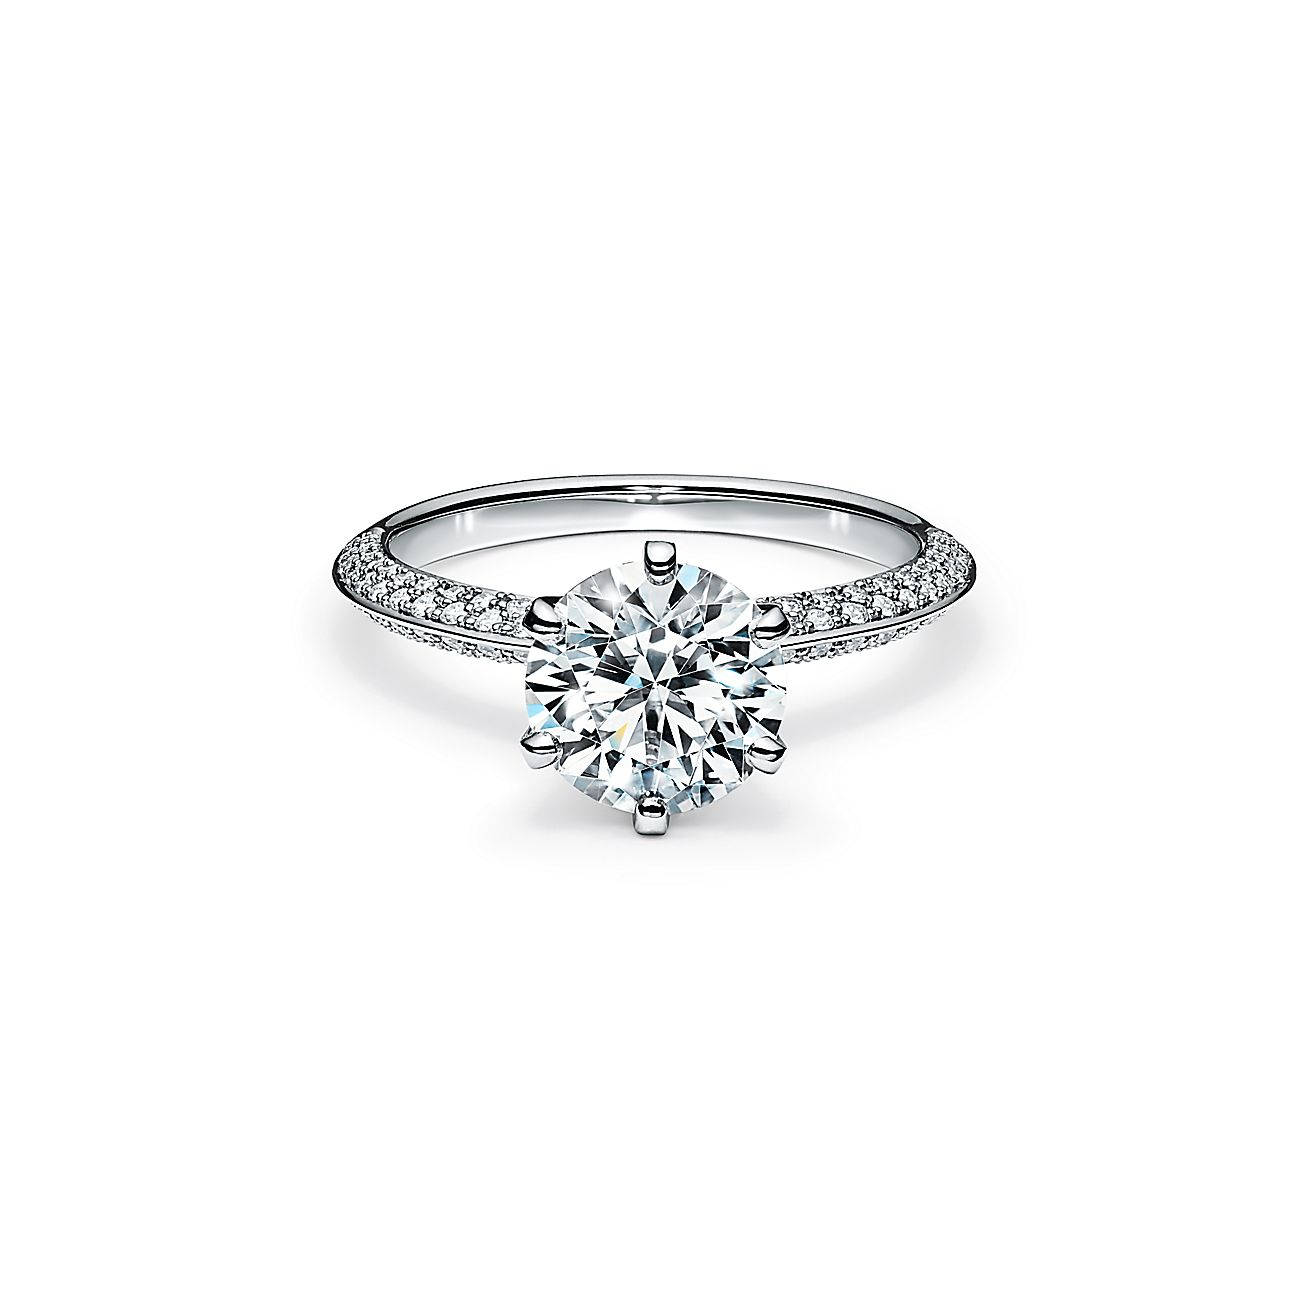 Pave Tiffany Setting Engagement Ring With A Pave Diamond Band